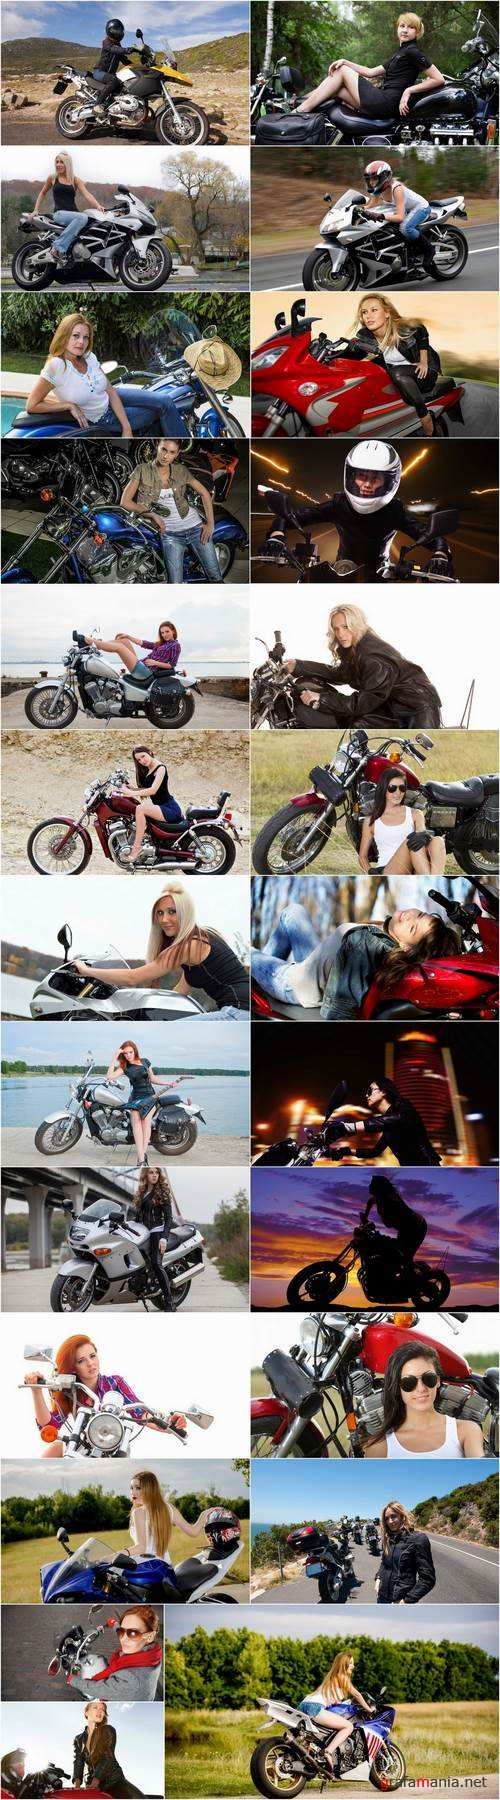 Woman woman on a motorcycle sportbike chopper enduro 25 HQ Jpeg